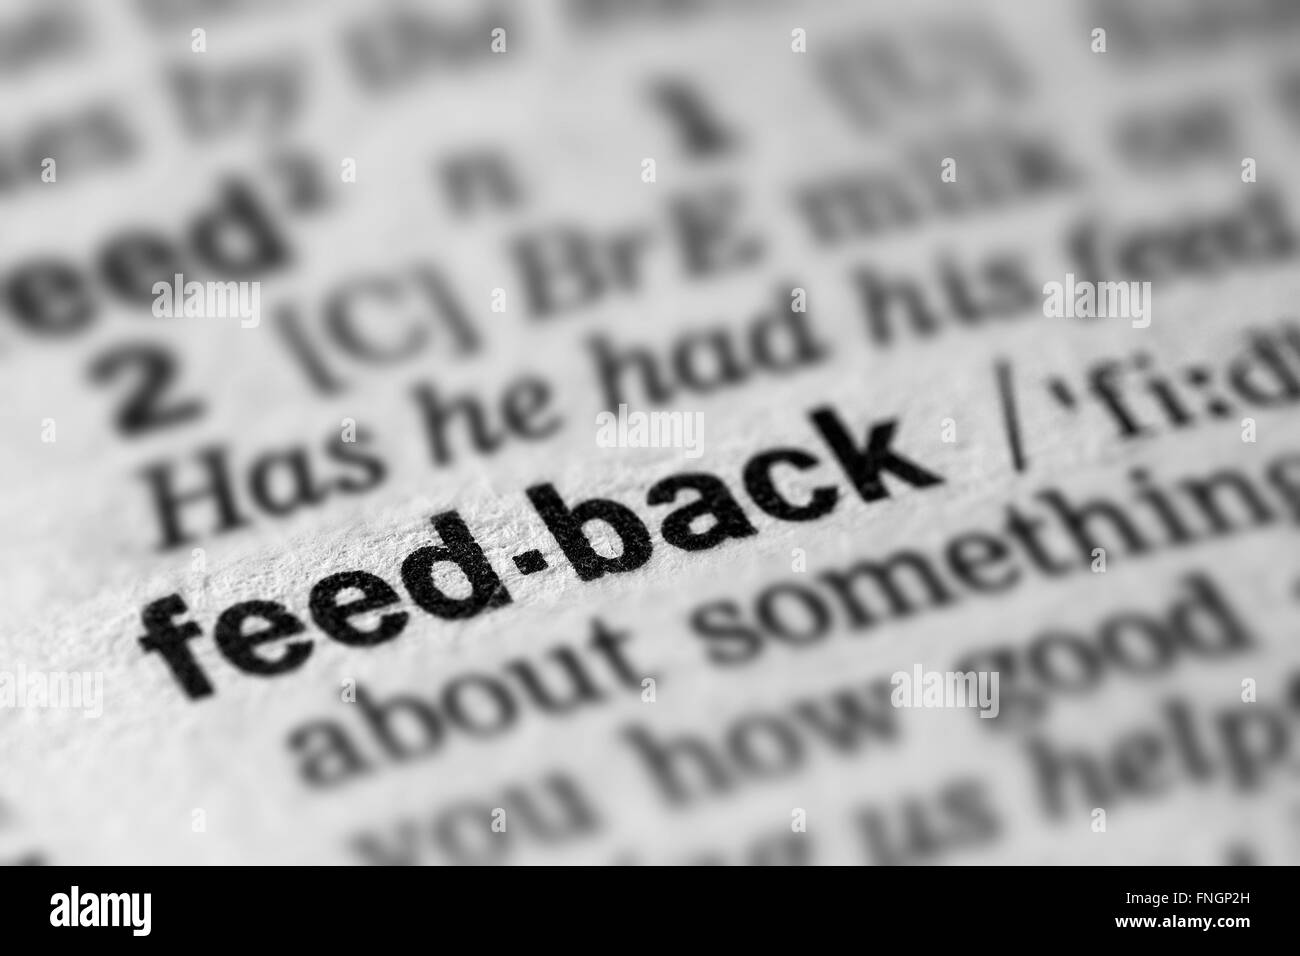 Feedback Definition Word Text in Dictionary Page - Stock Image